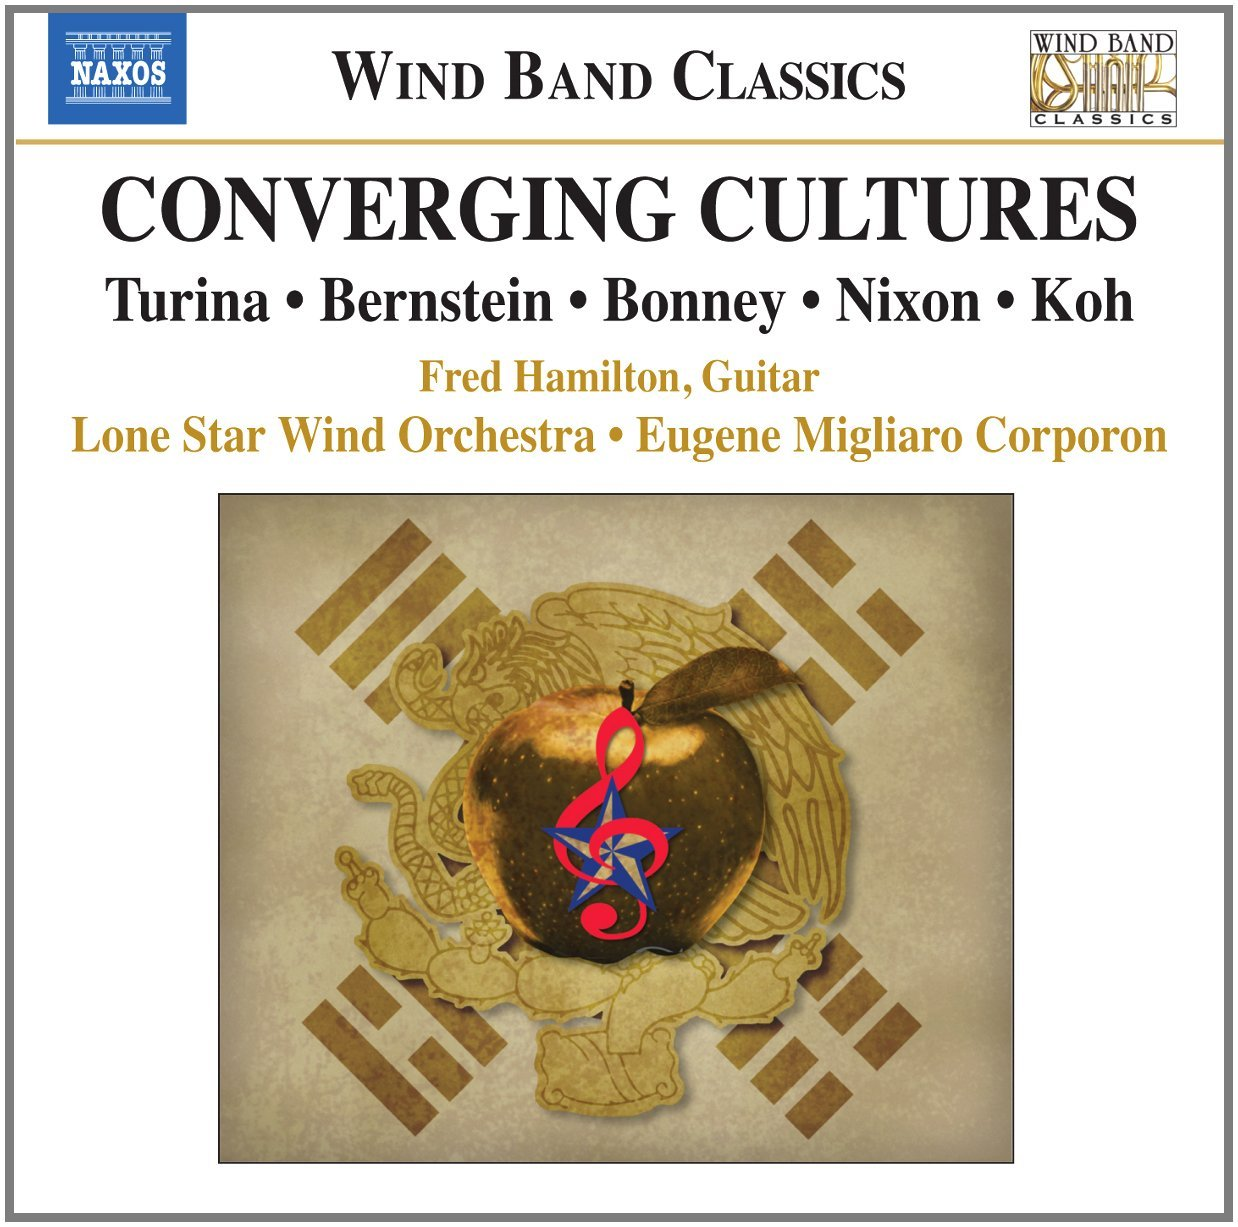 lone star wind orchestra, converging cultures cd, orchestra dallas tx